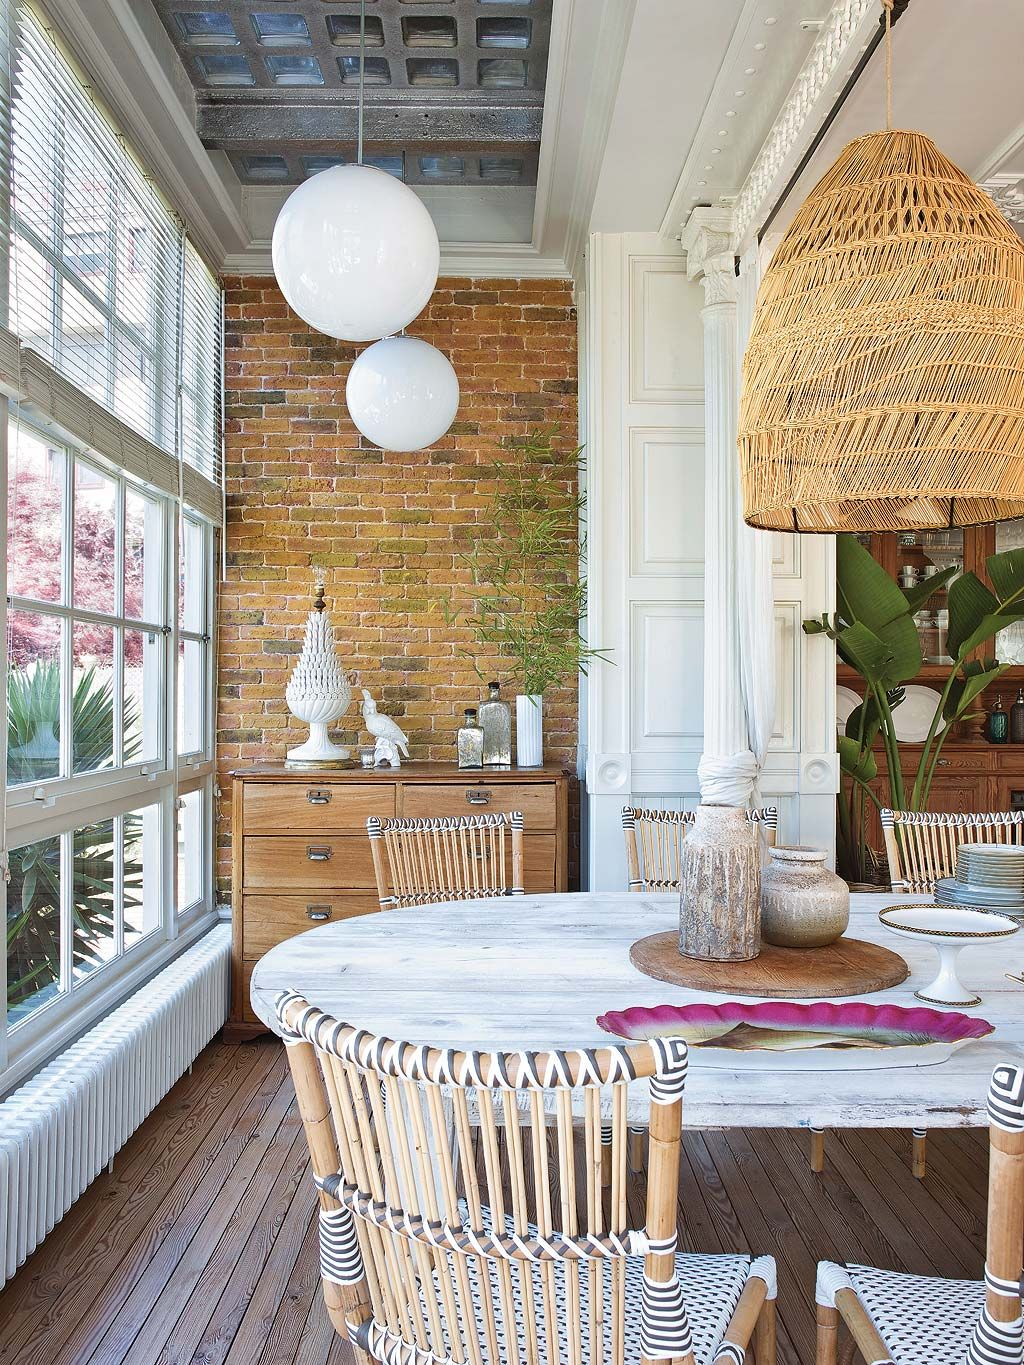 The british were forerunners of the colonial also called plantation style where they left many of their interior decorating influences in their colonies